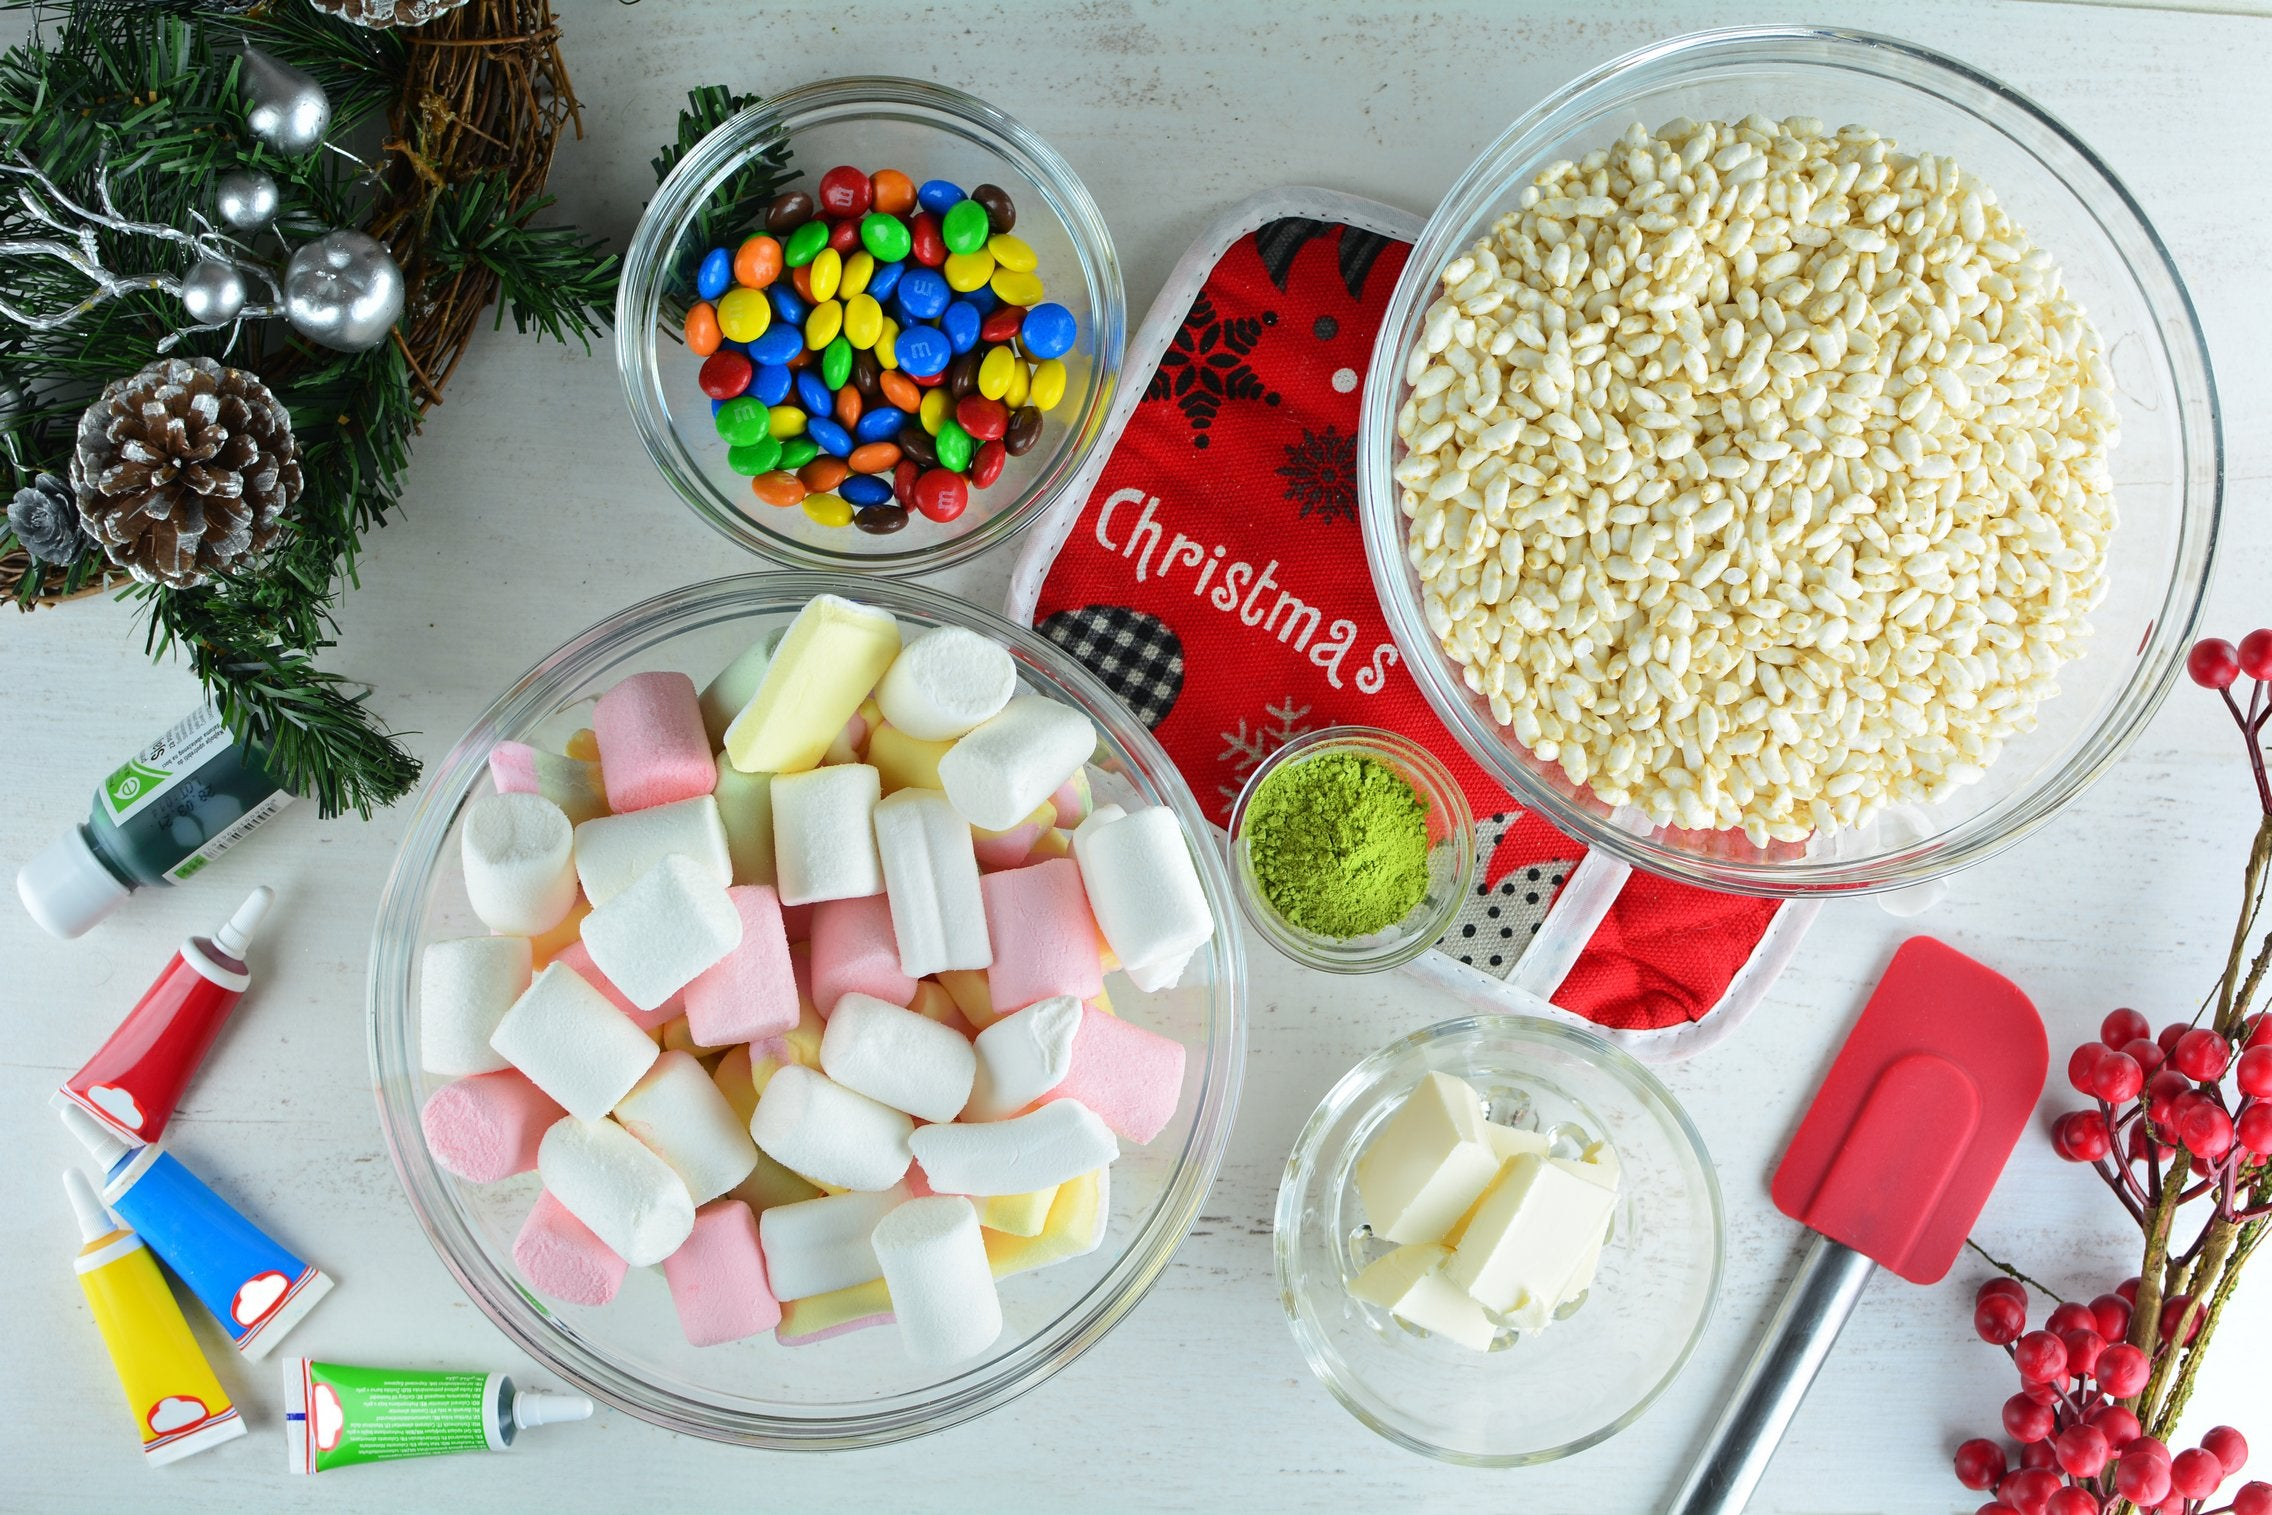 marshmallow-matcha-grinch-cookies-with-m-m-s-ingredients